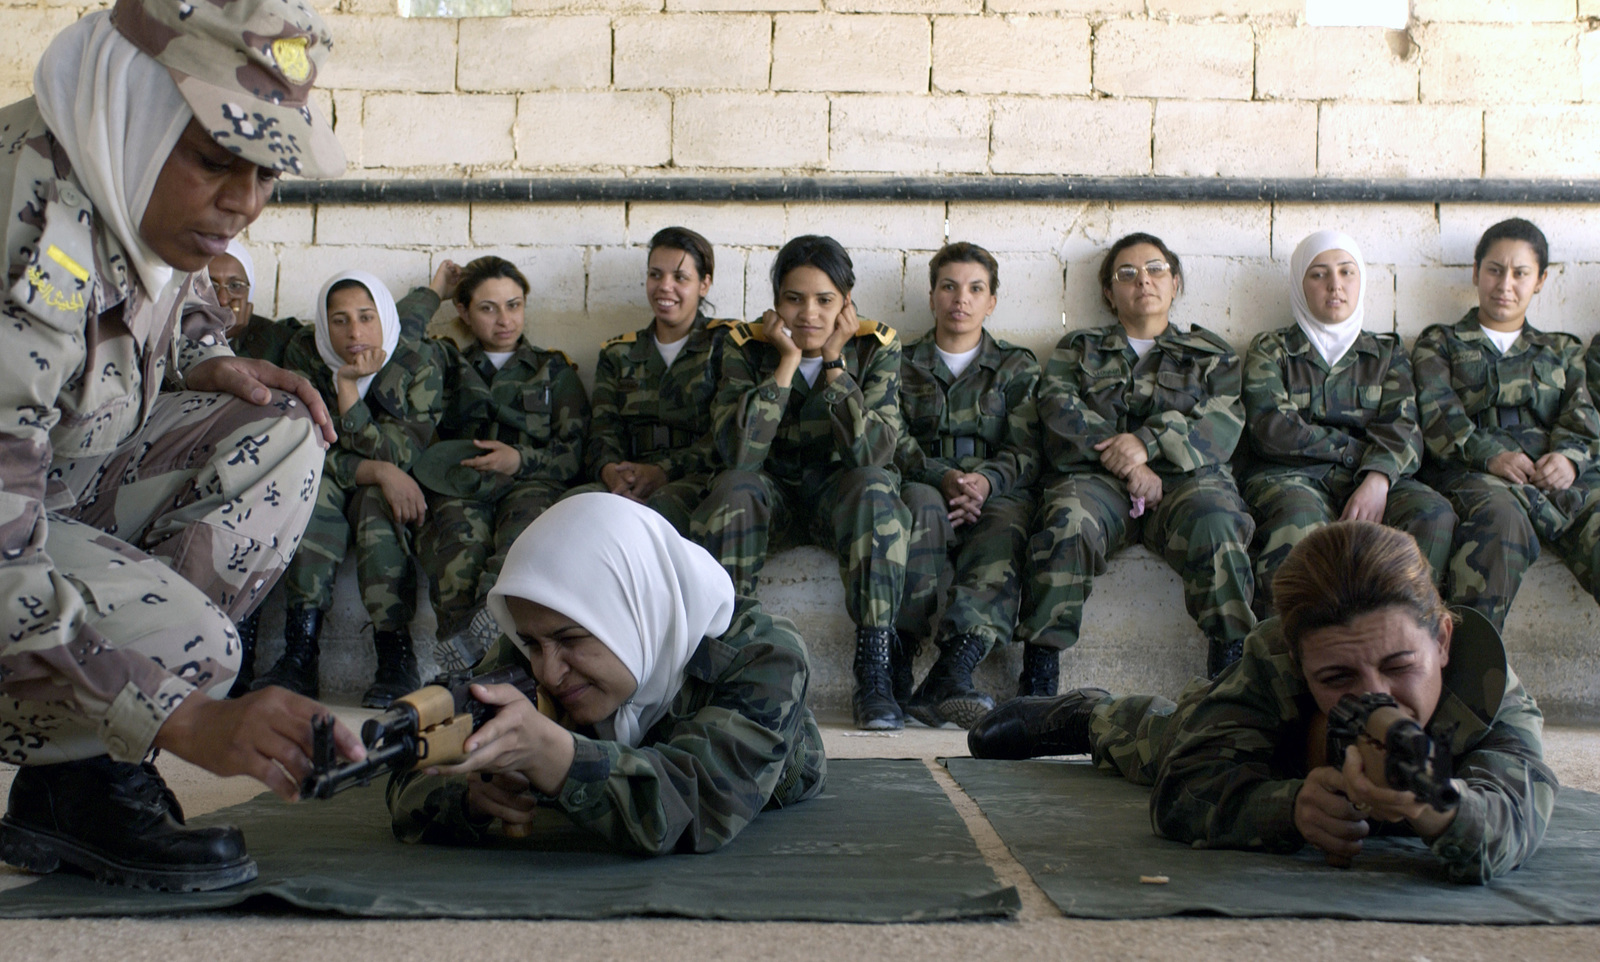 Jordanian Warrant Officer (WO) Emad, instructs trainees from